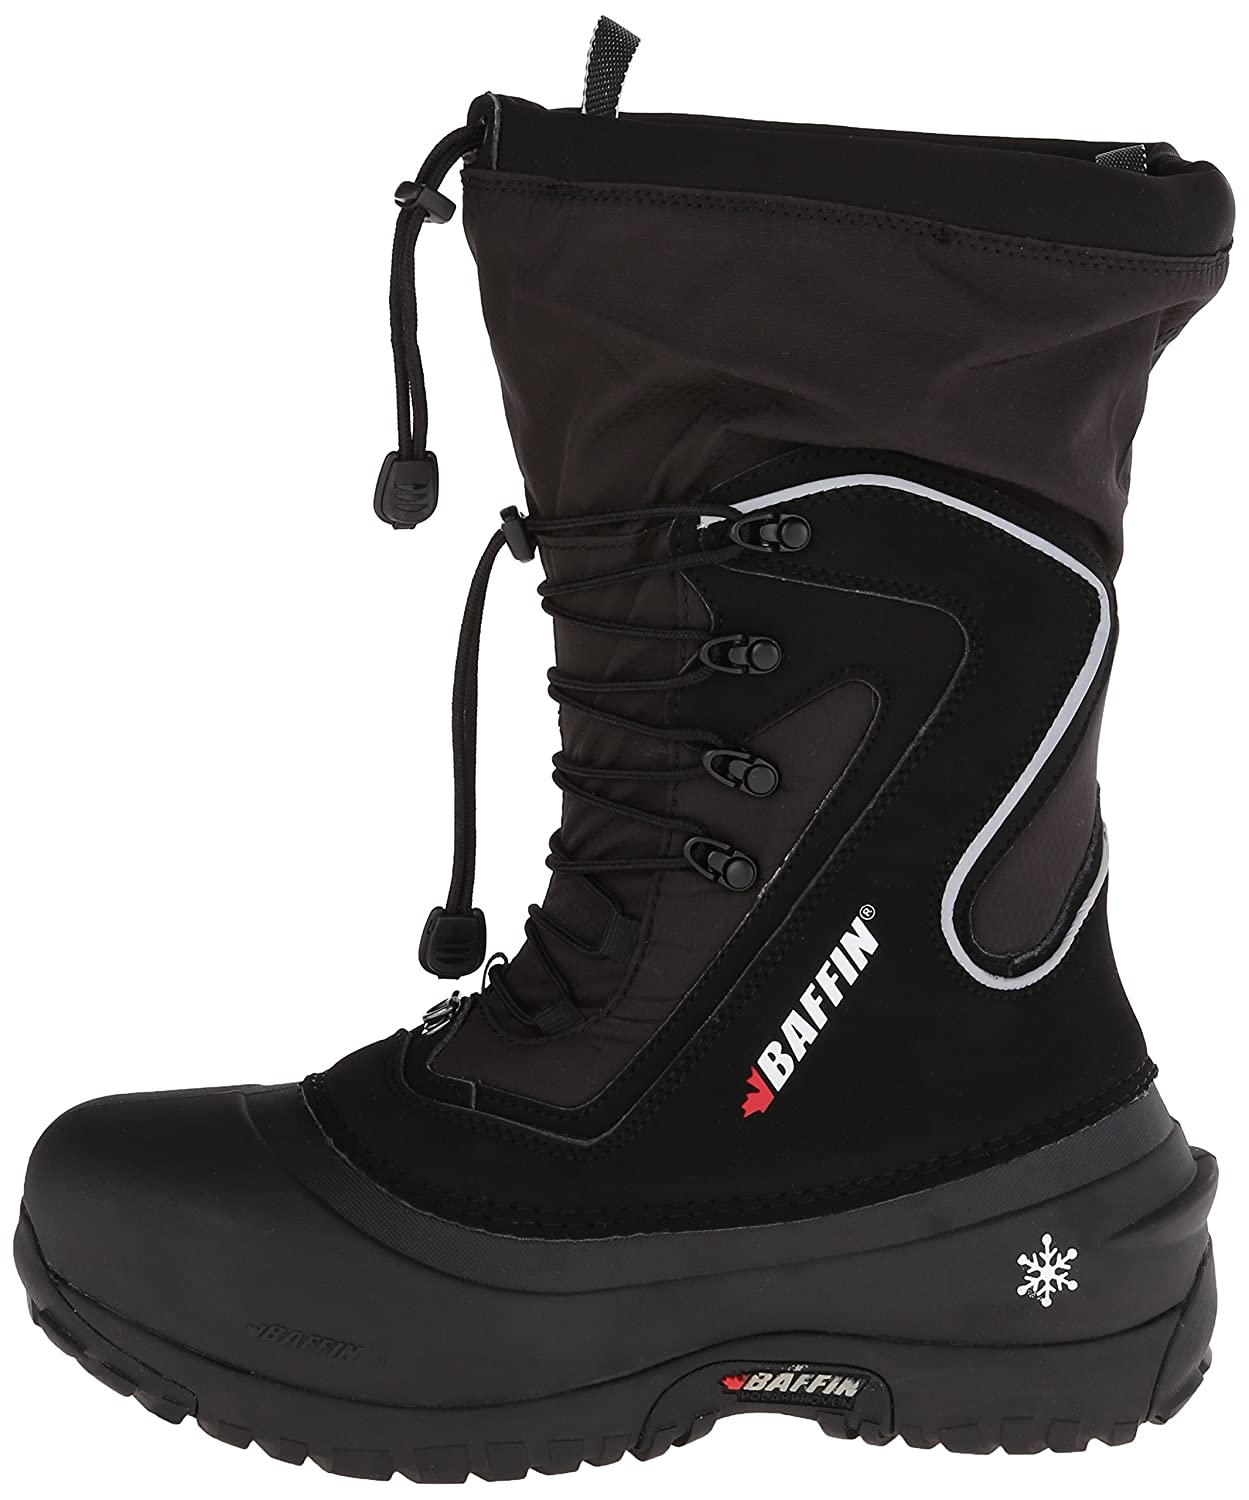 23dce5f27 Baffin Women's Flare Snow Boots: Amazon.ca: Shoes & Handbags